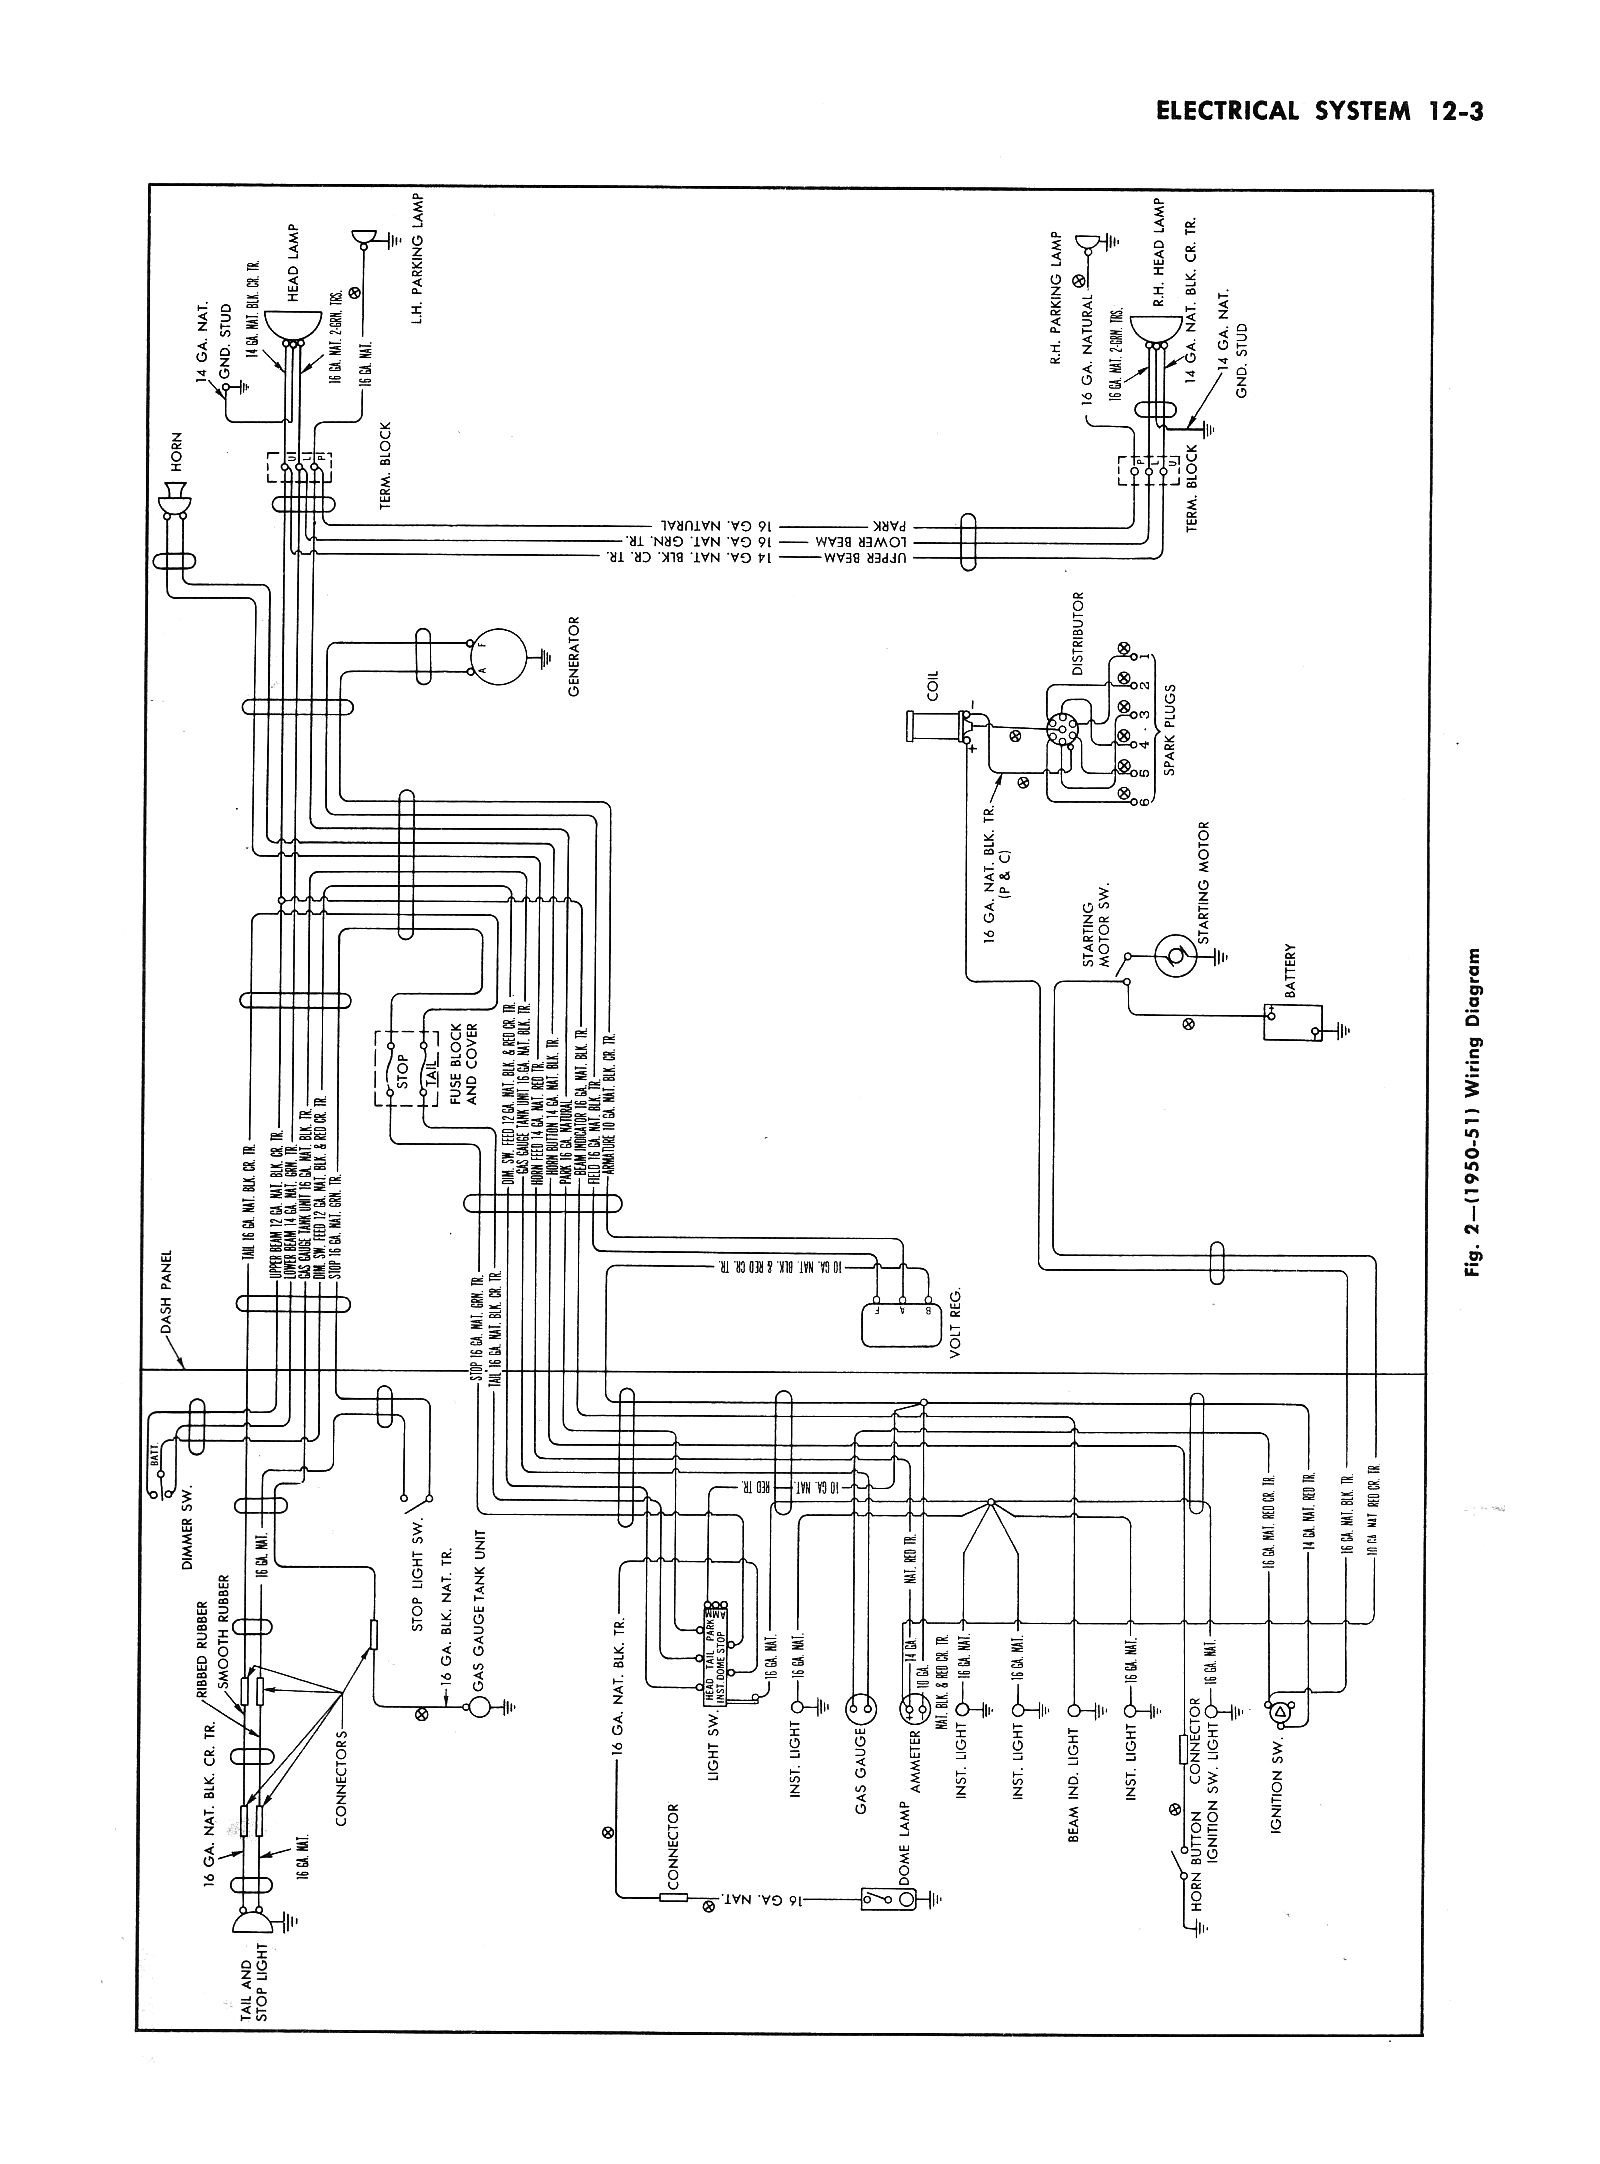 50ctsm1203 chevy wiring diagrams 1950 chevy truck wiring diagram at honlapkeszites.co